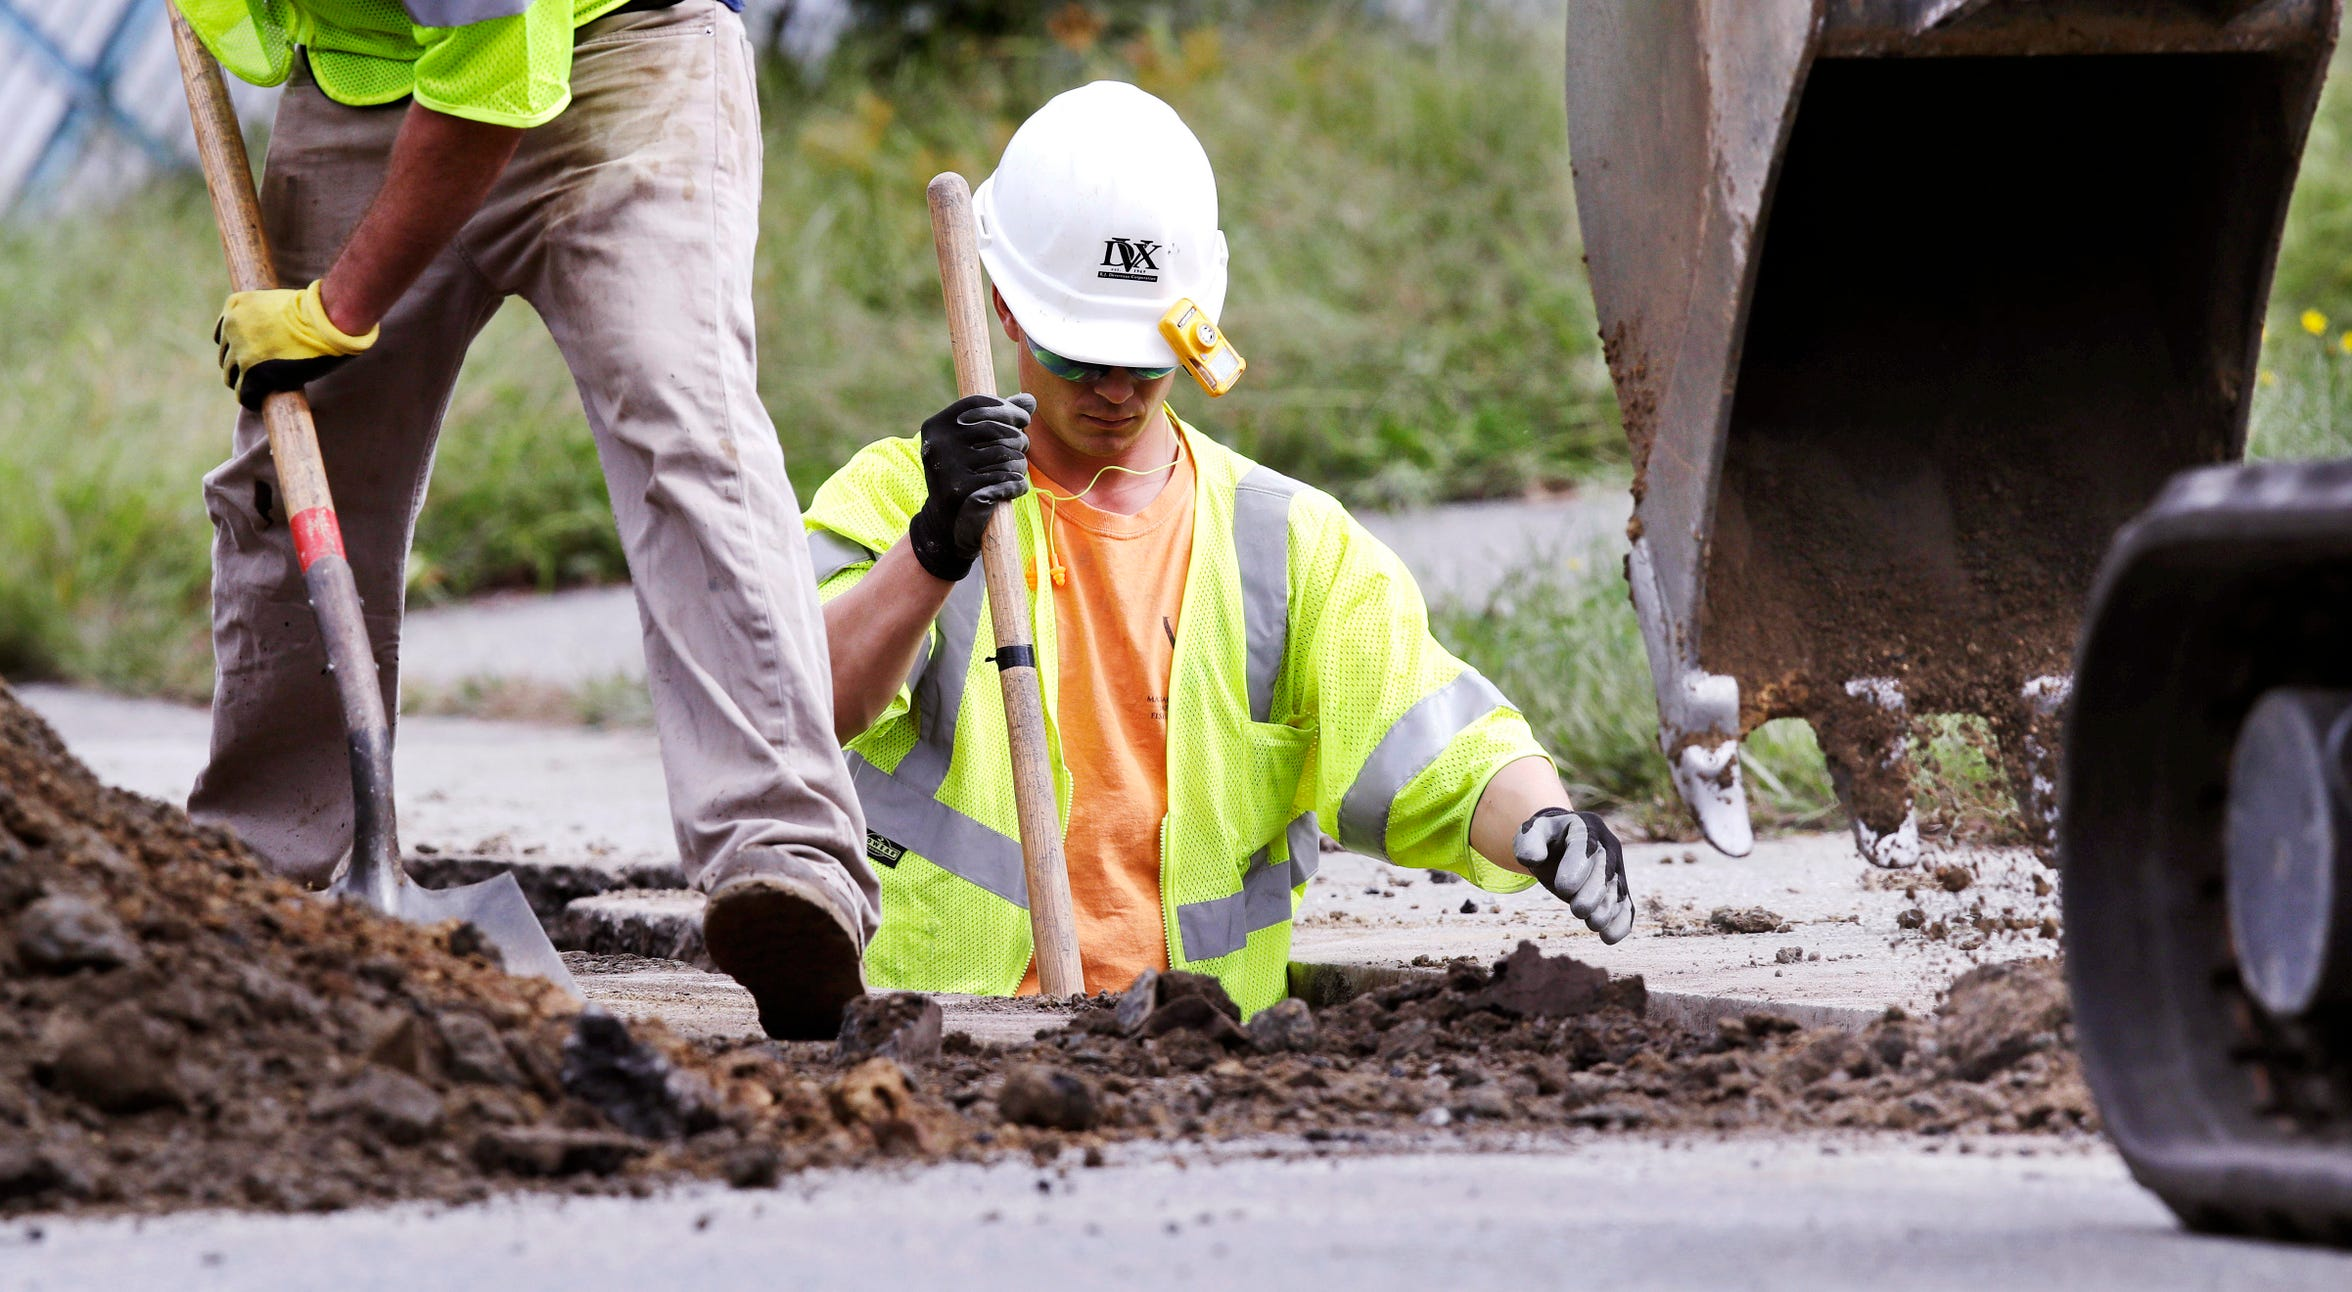 Utility contractors dig up the road above natural gas lines along Dracut Street in Lawrence, Mass., Sept. 20, 2018.